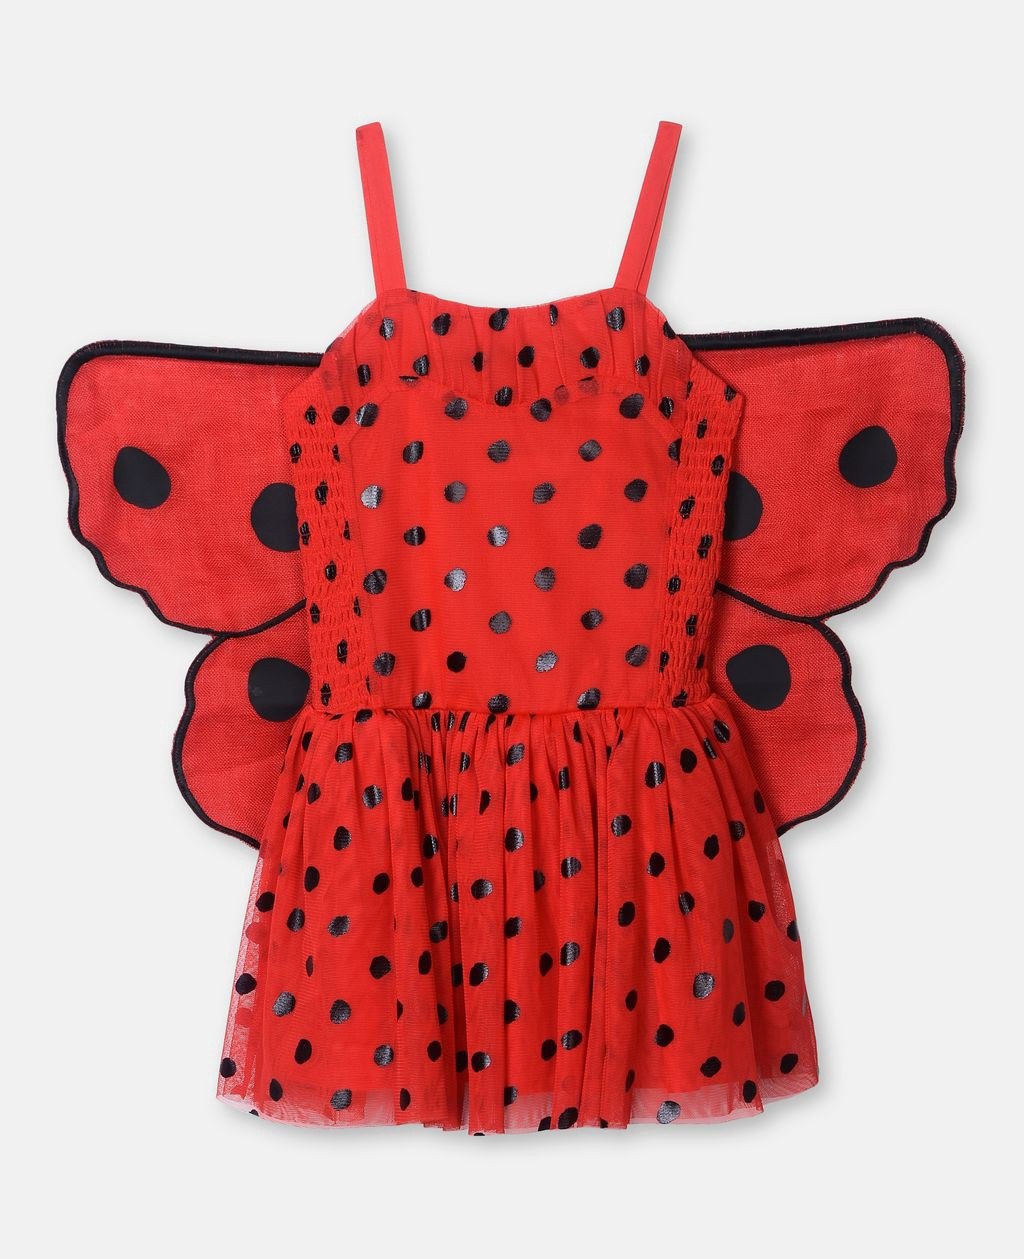 71dc7b4c5 Stella Mccartney Ladybug Dress - 4 | Products | Stella mccartney ...